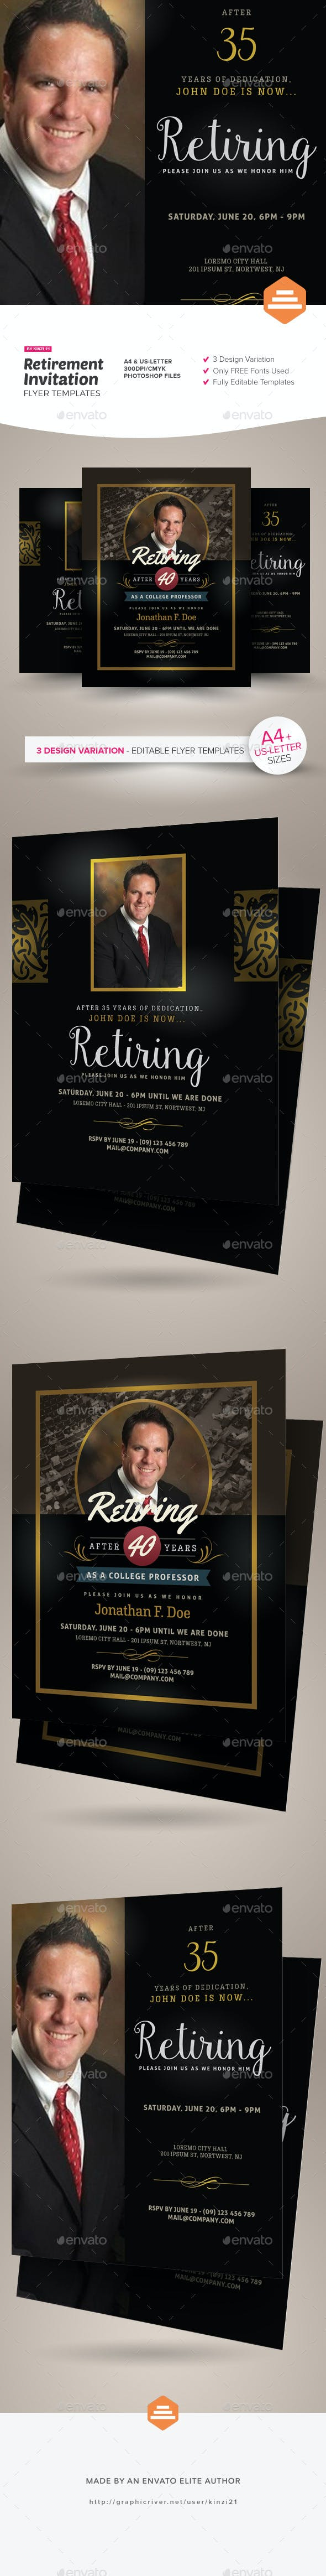 retirement invitation flyer templates by kinzi21 graphicriver